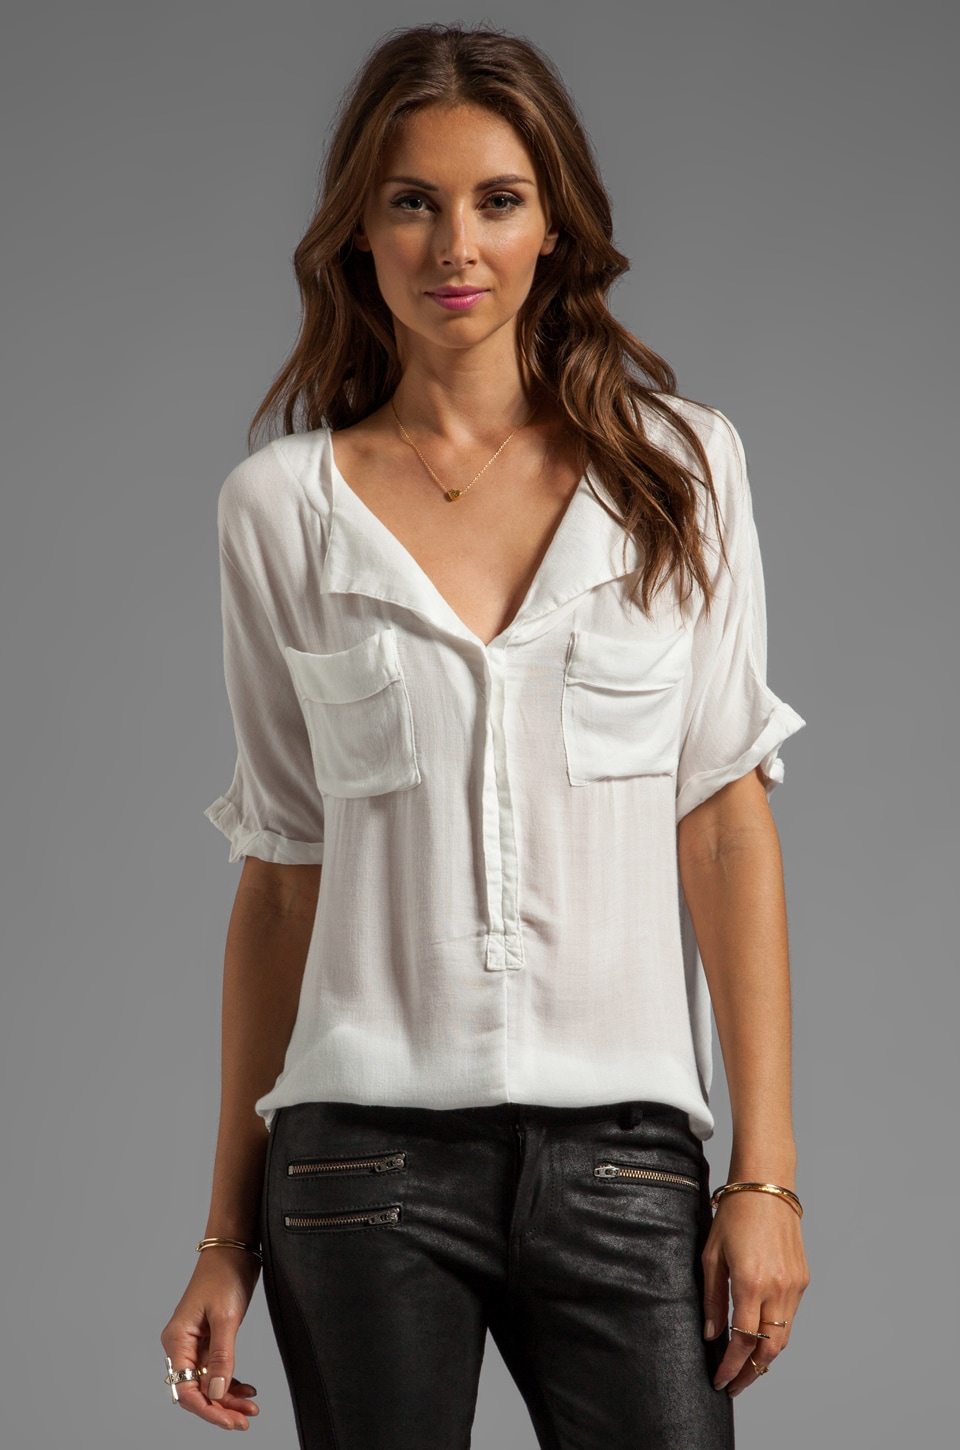 Free People American Pie Top in White